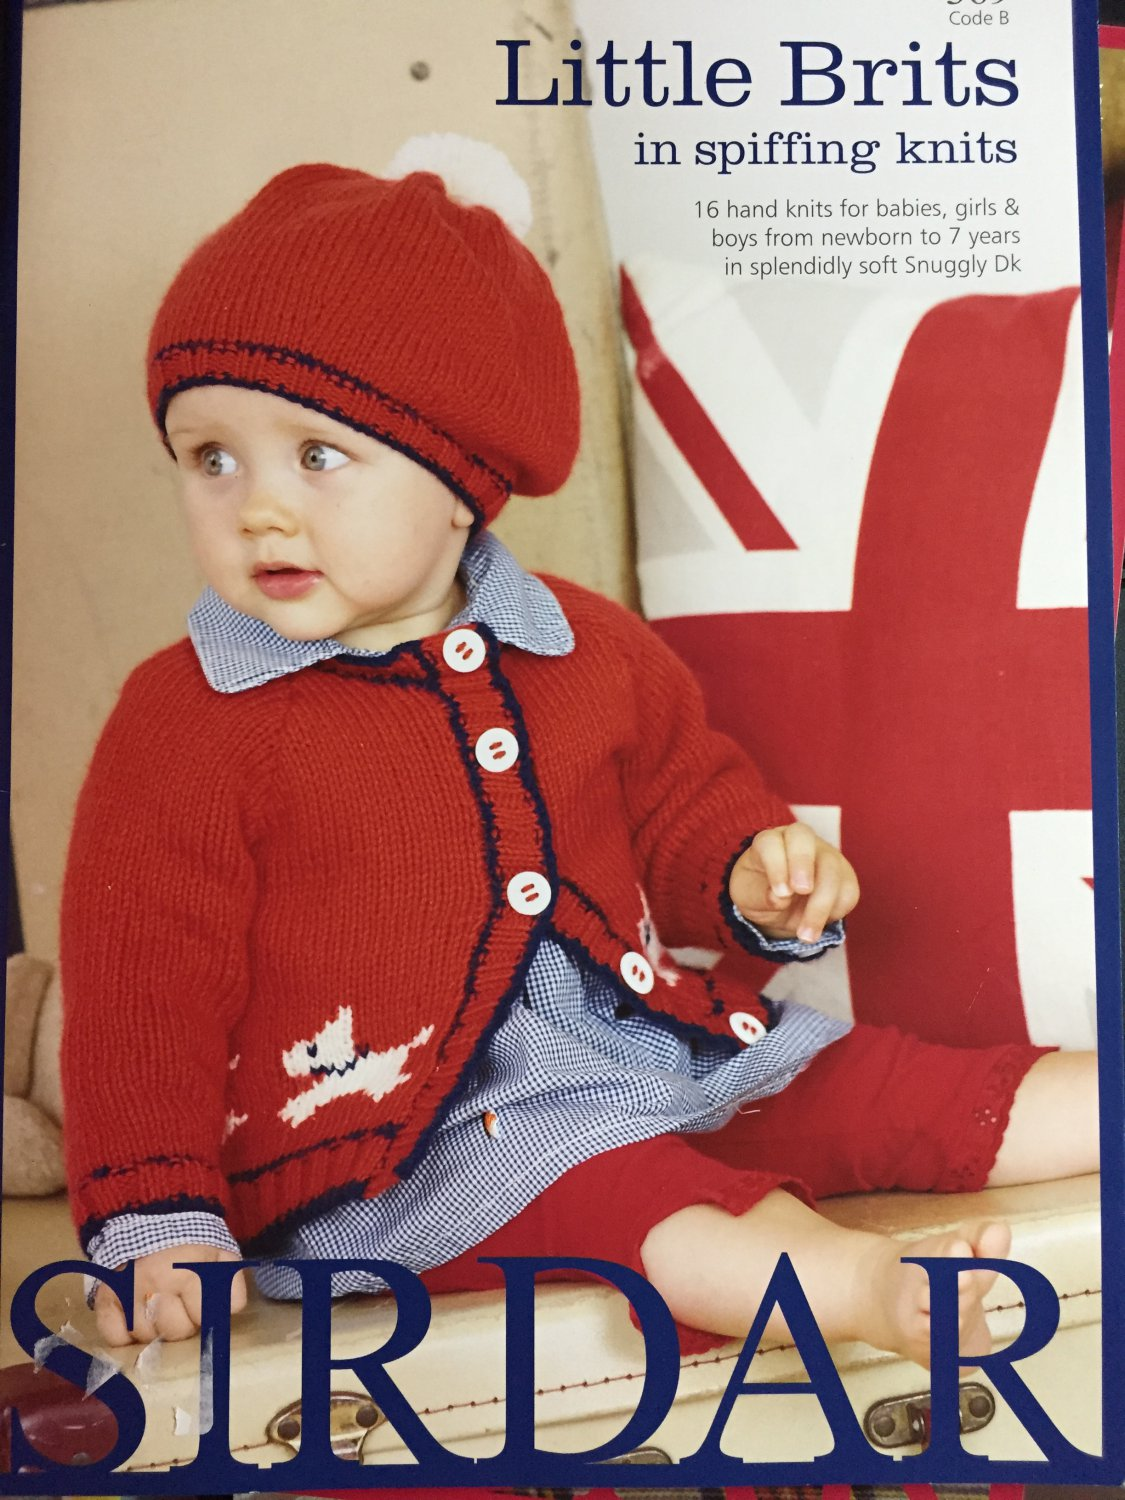 Sirdar 369 Little Brits in Spiffing Knits Knitting Patterns for Babies 16 designs